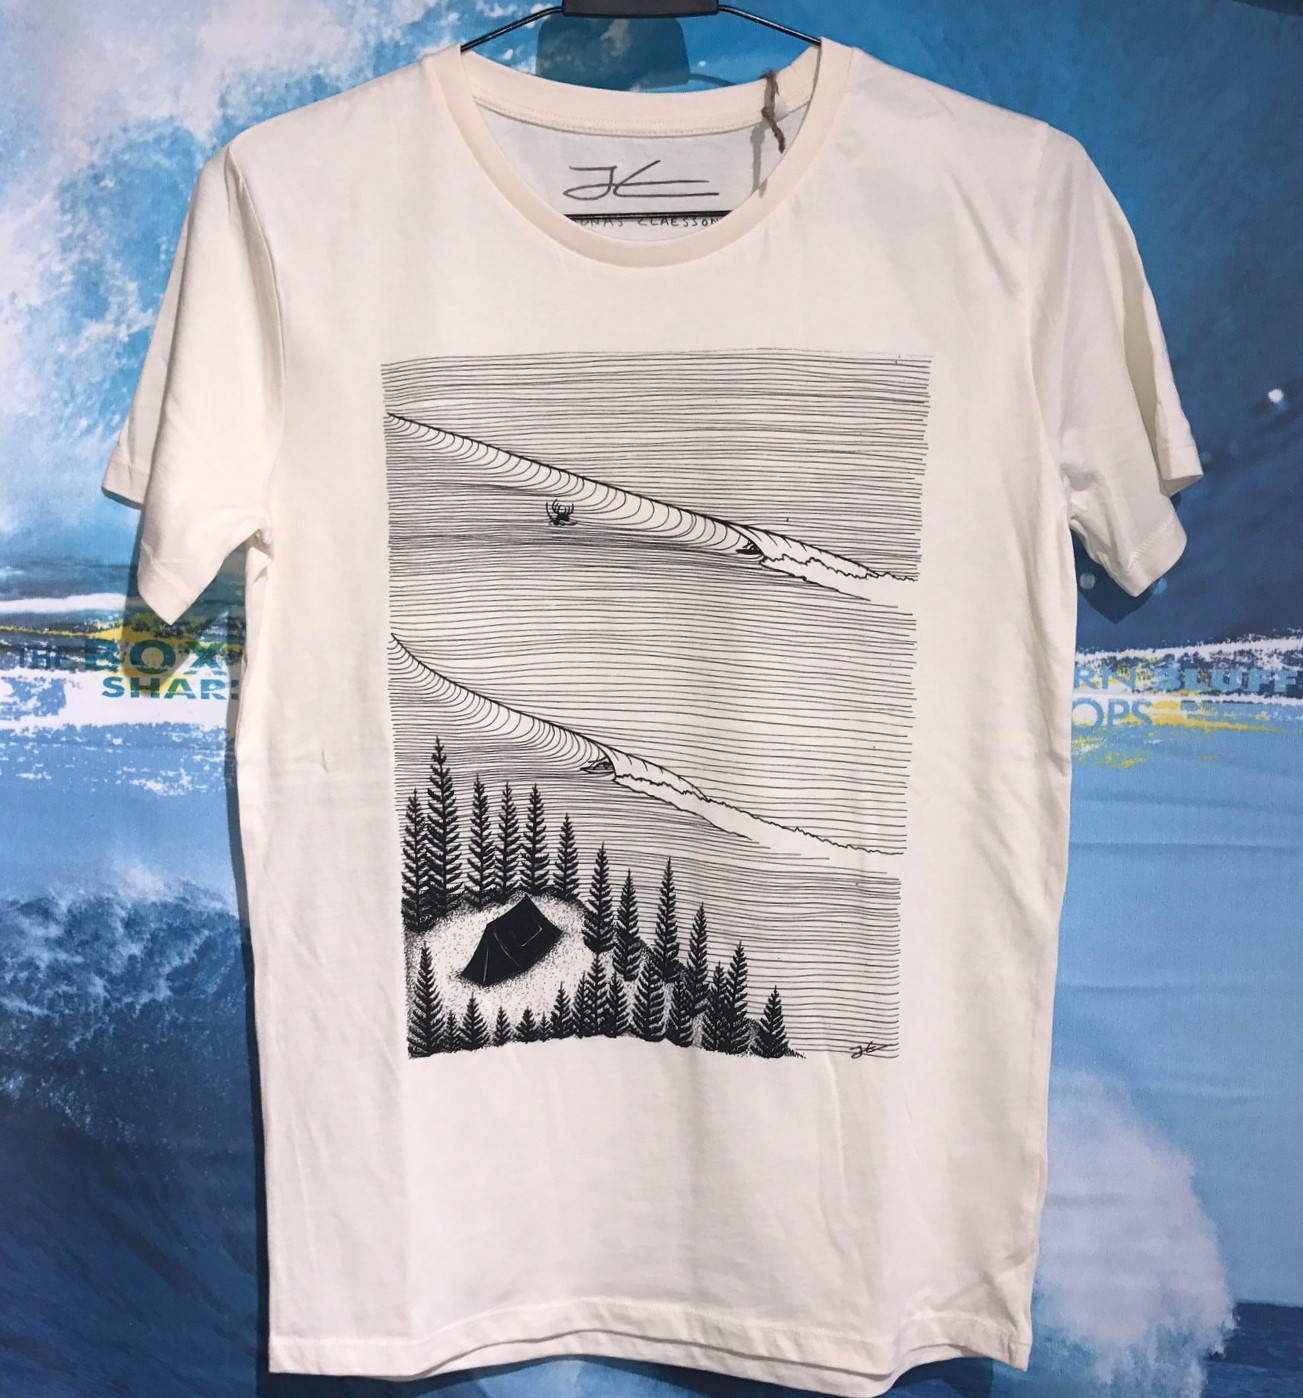 T-Shirt Jonas Claesson What s Up Lannion 767ee84fe73d